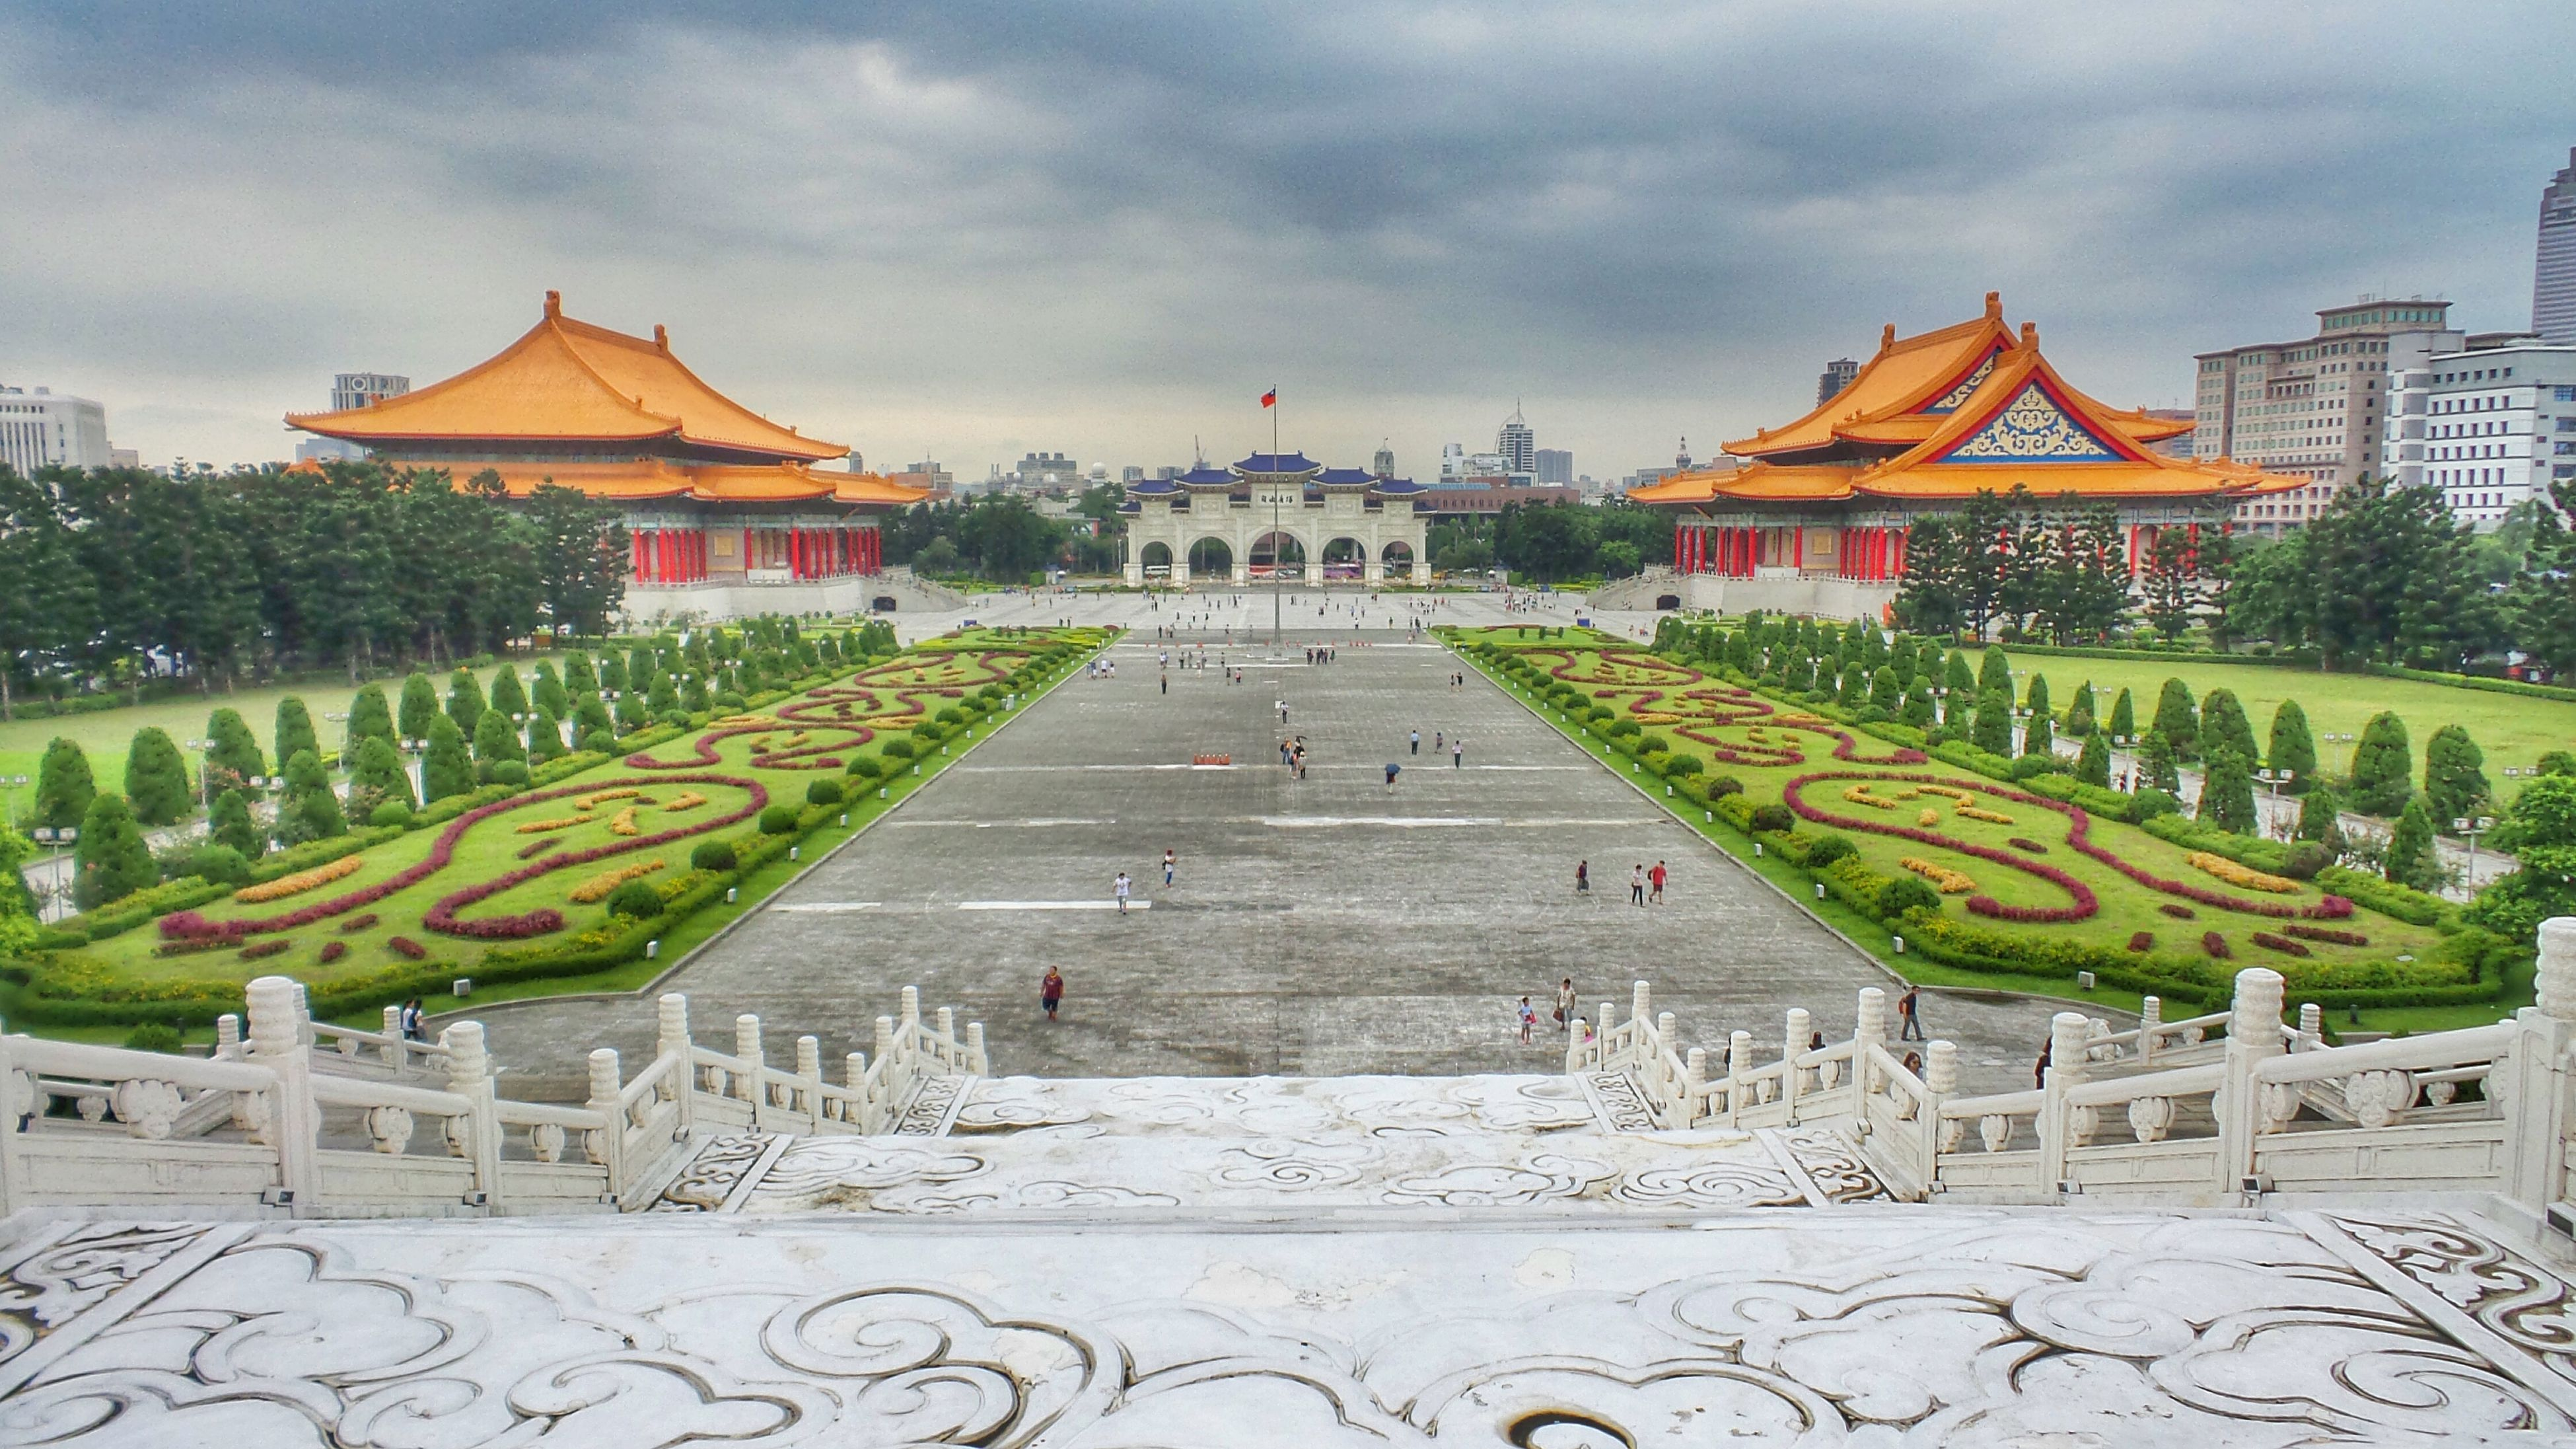 Taiwan Taipei Freedom Square  Memorial Archway Clouds And Sky Chiang Kai-shek Memorial Hall Music Hall Opera House Traveling Travel Photography 台湾 台北 自由广场 忠正纪念堂 歌剧院 音乐厅 EyeEm Best Shots Eyeemphotography EyeEm Gallery Lovetaiwan